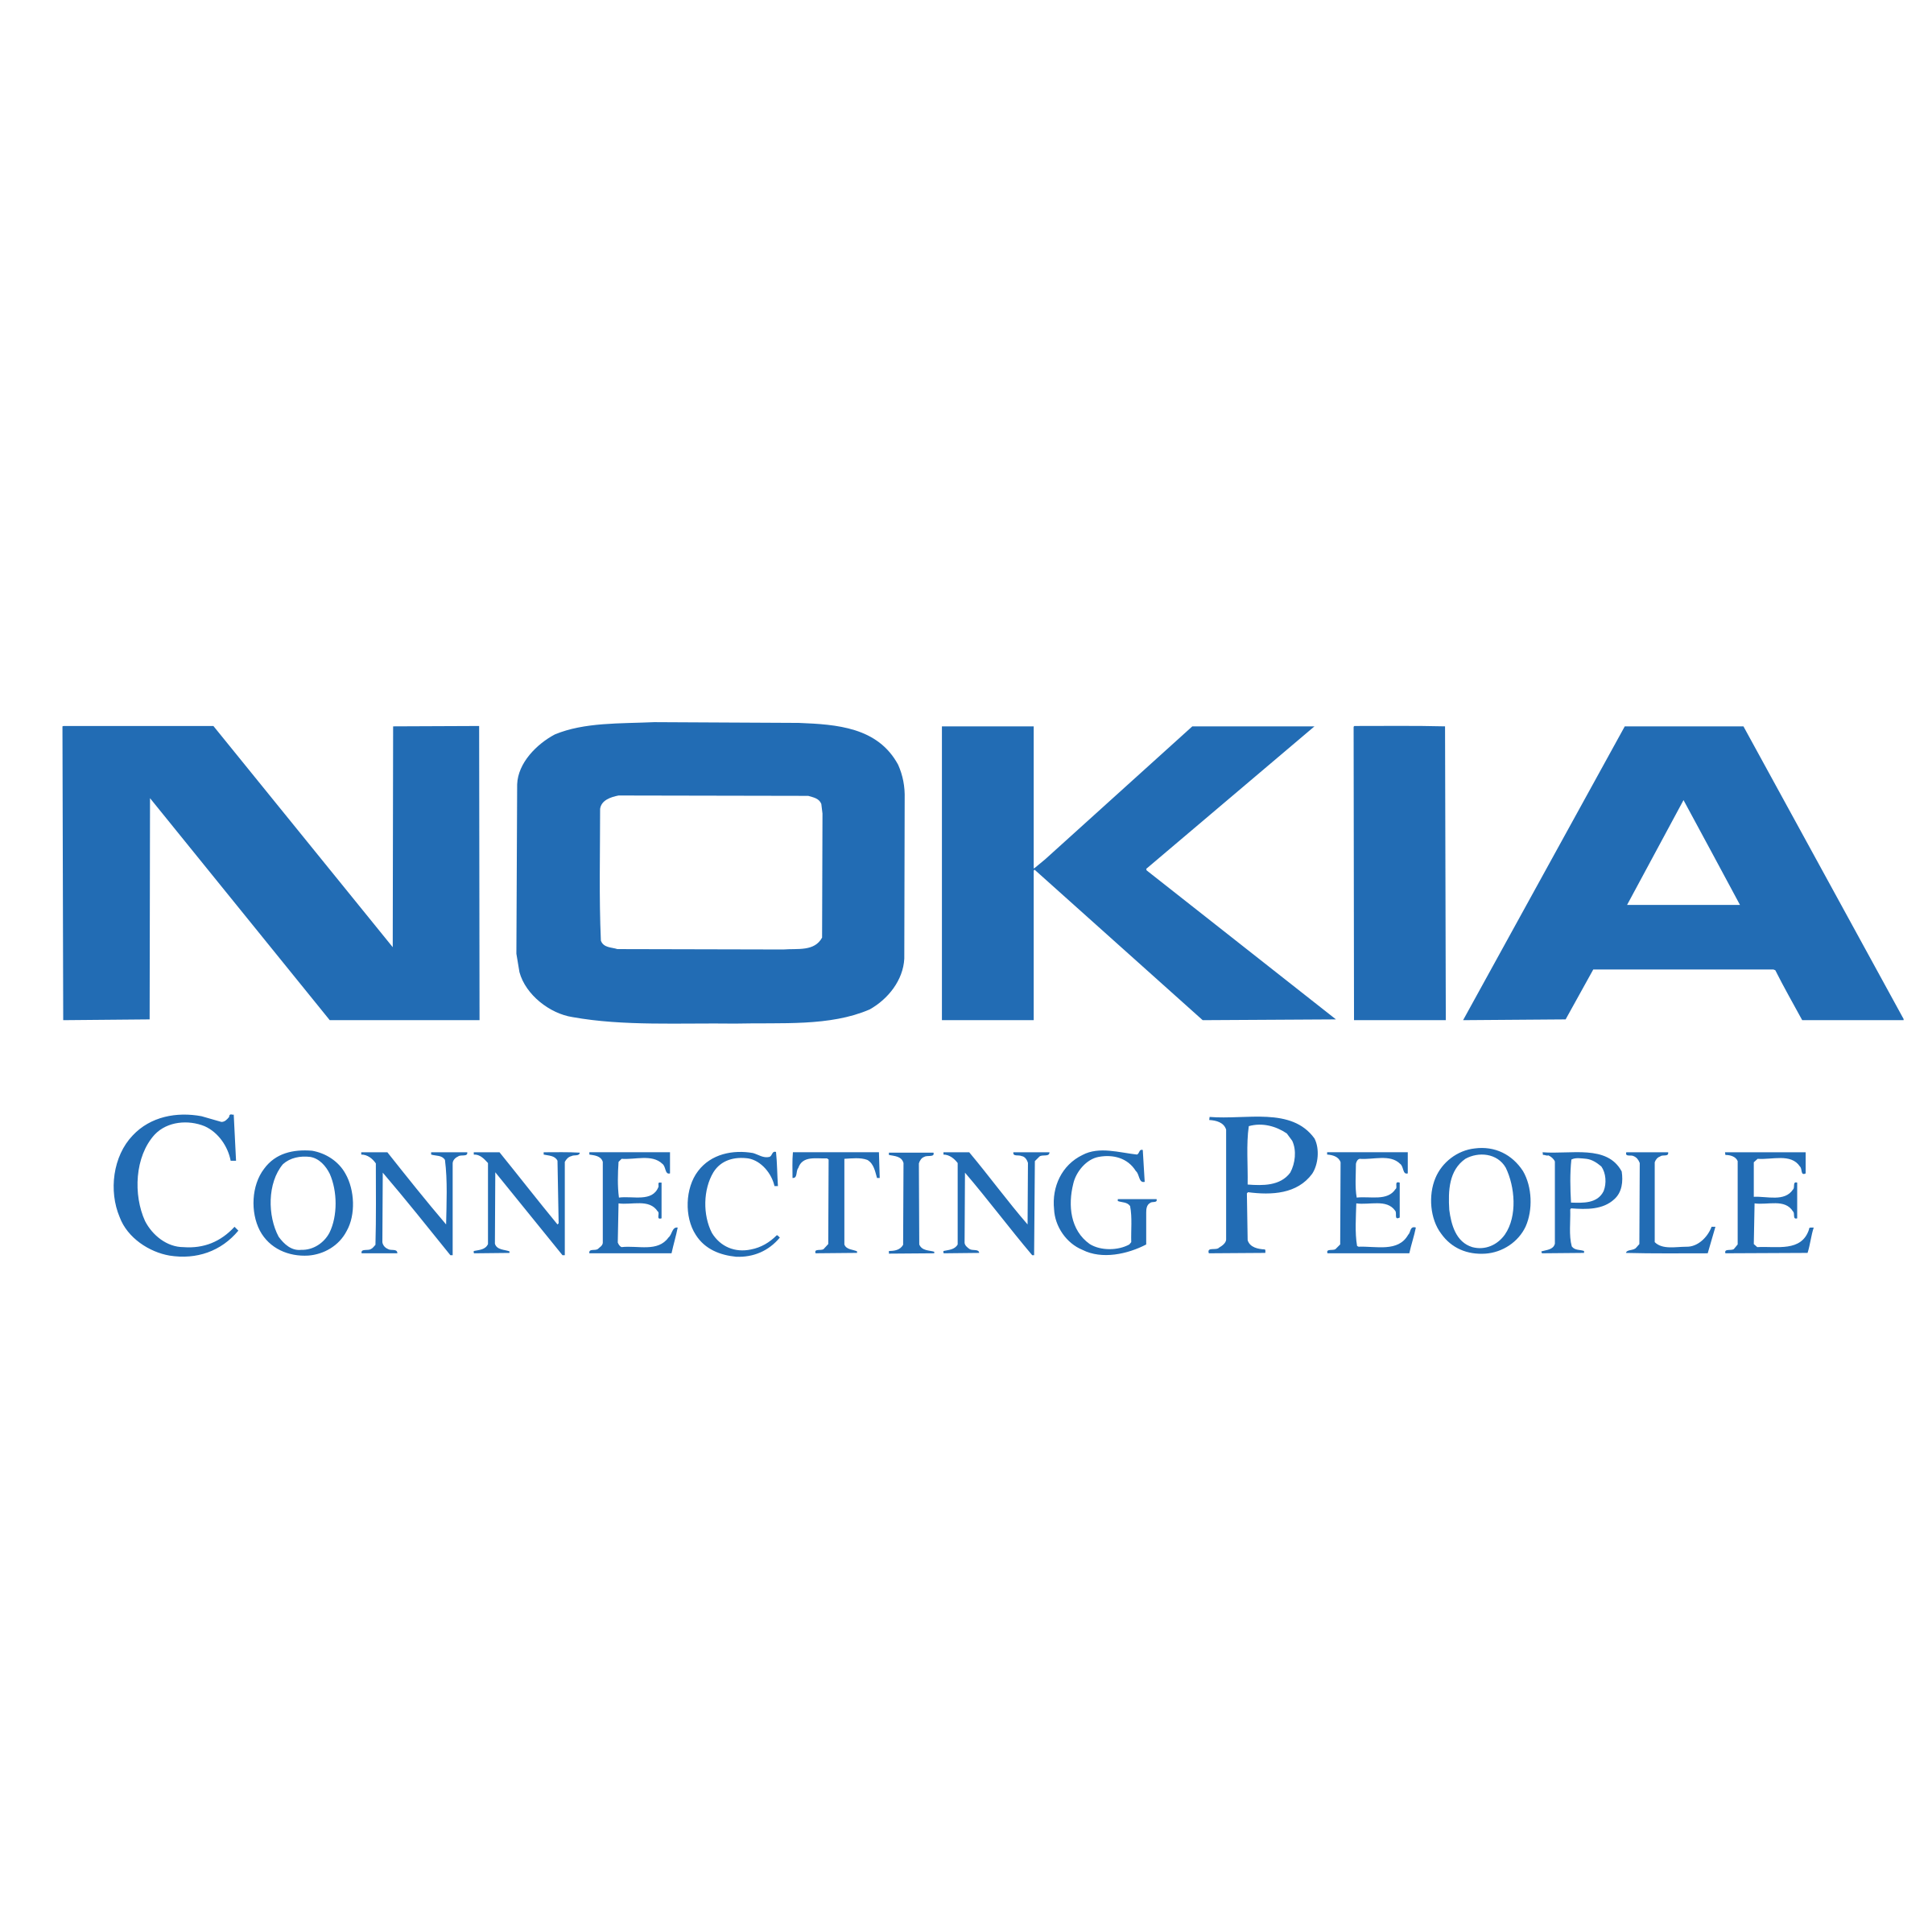 Nokia Logo PNG Transparent & SVG Vector.